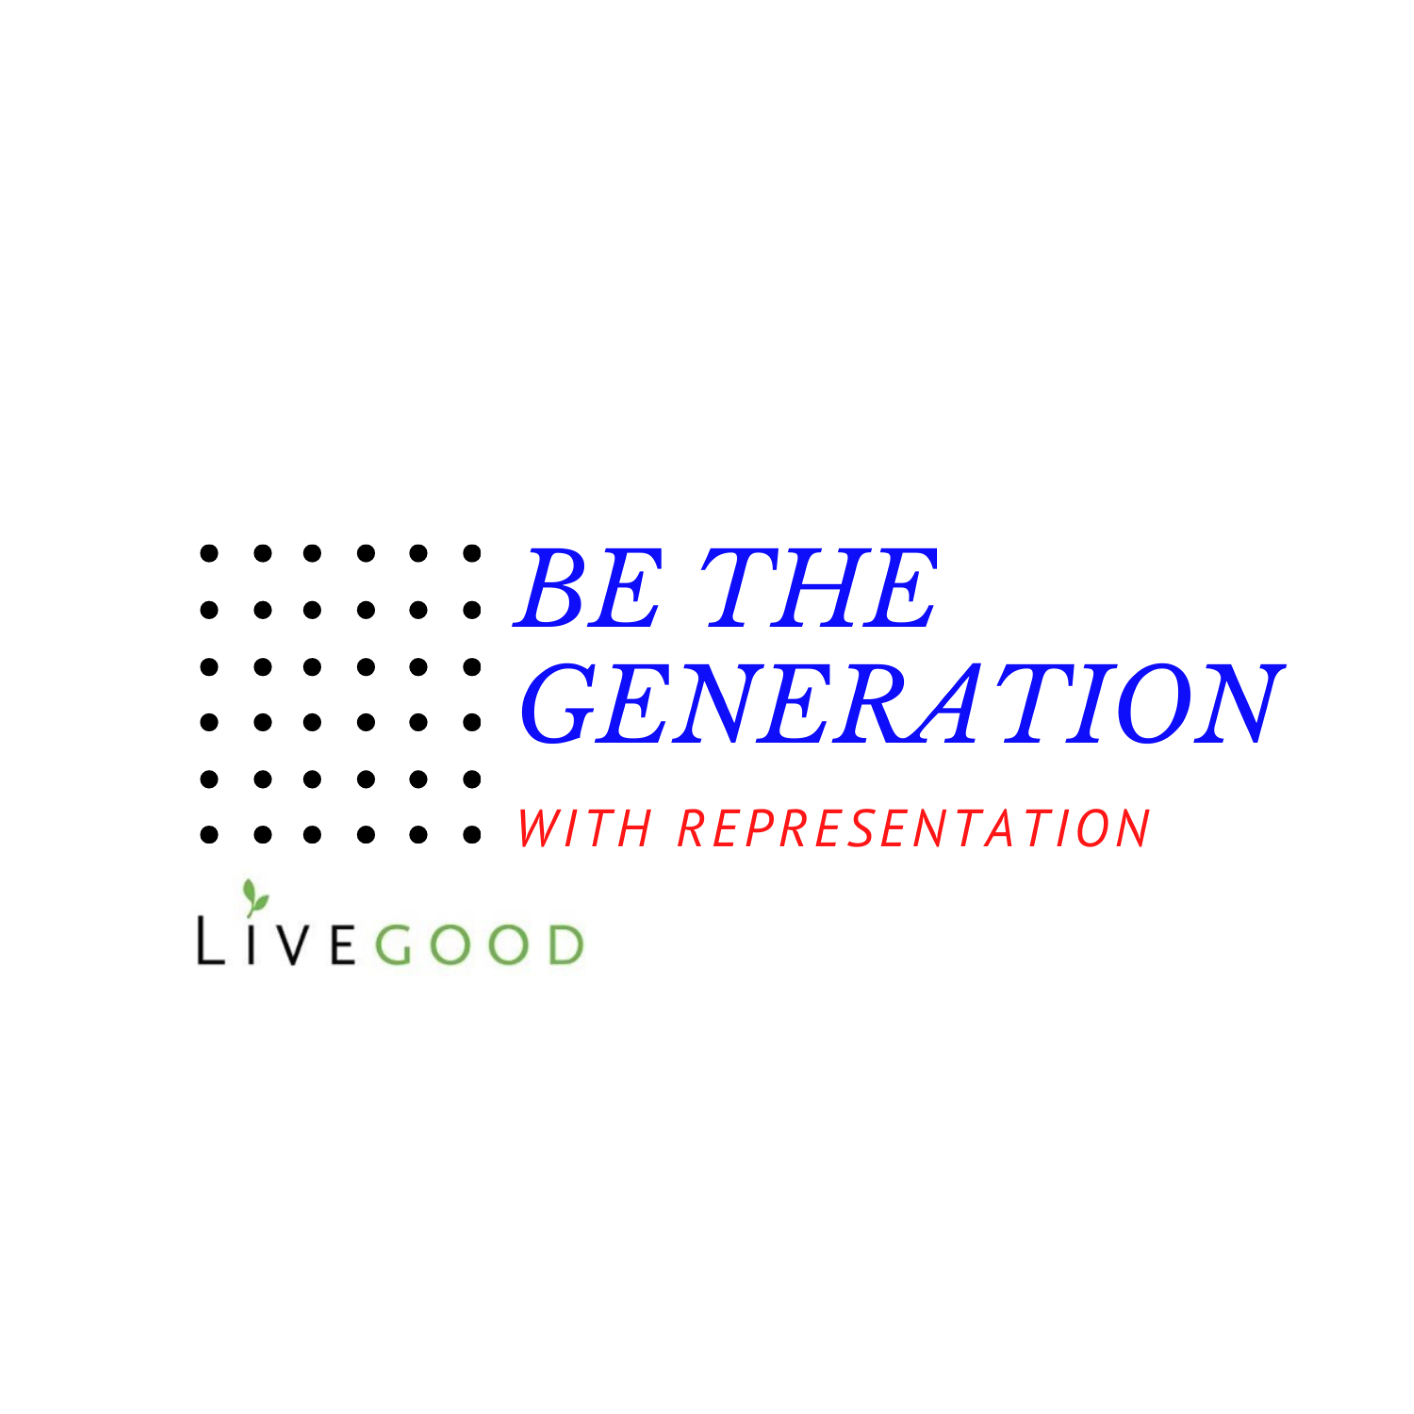 Live Good Be The Generation